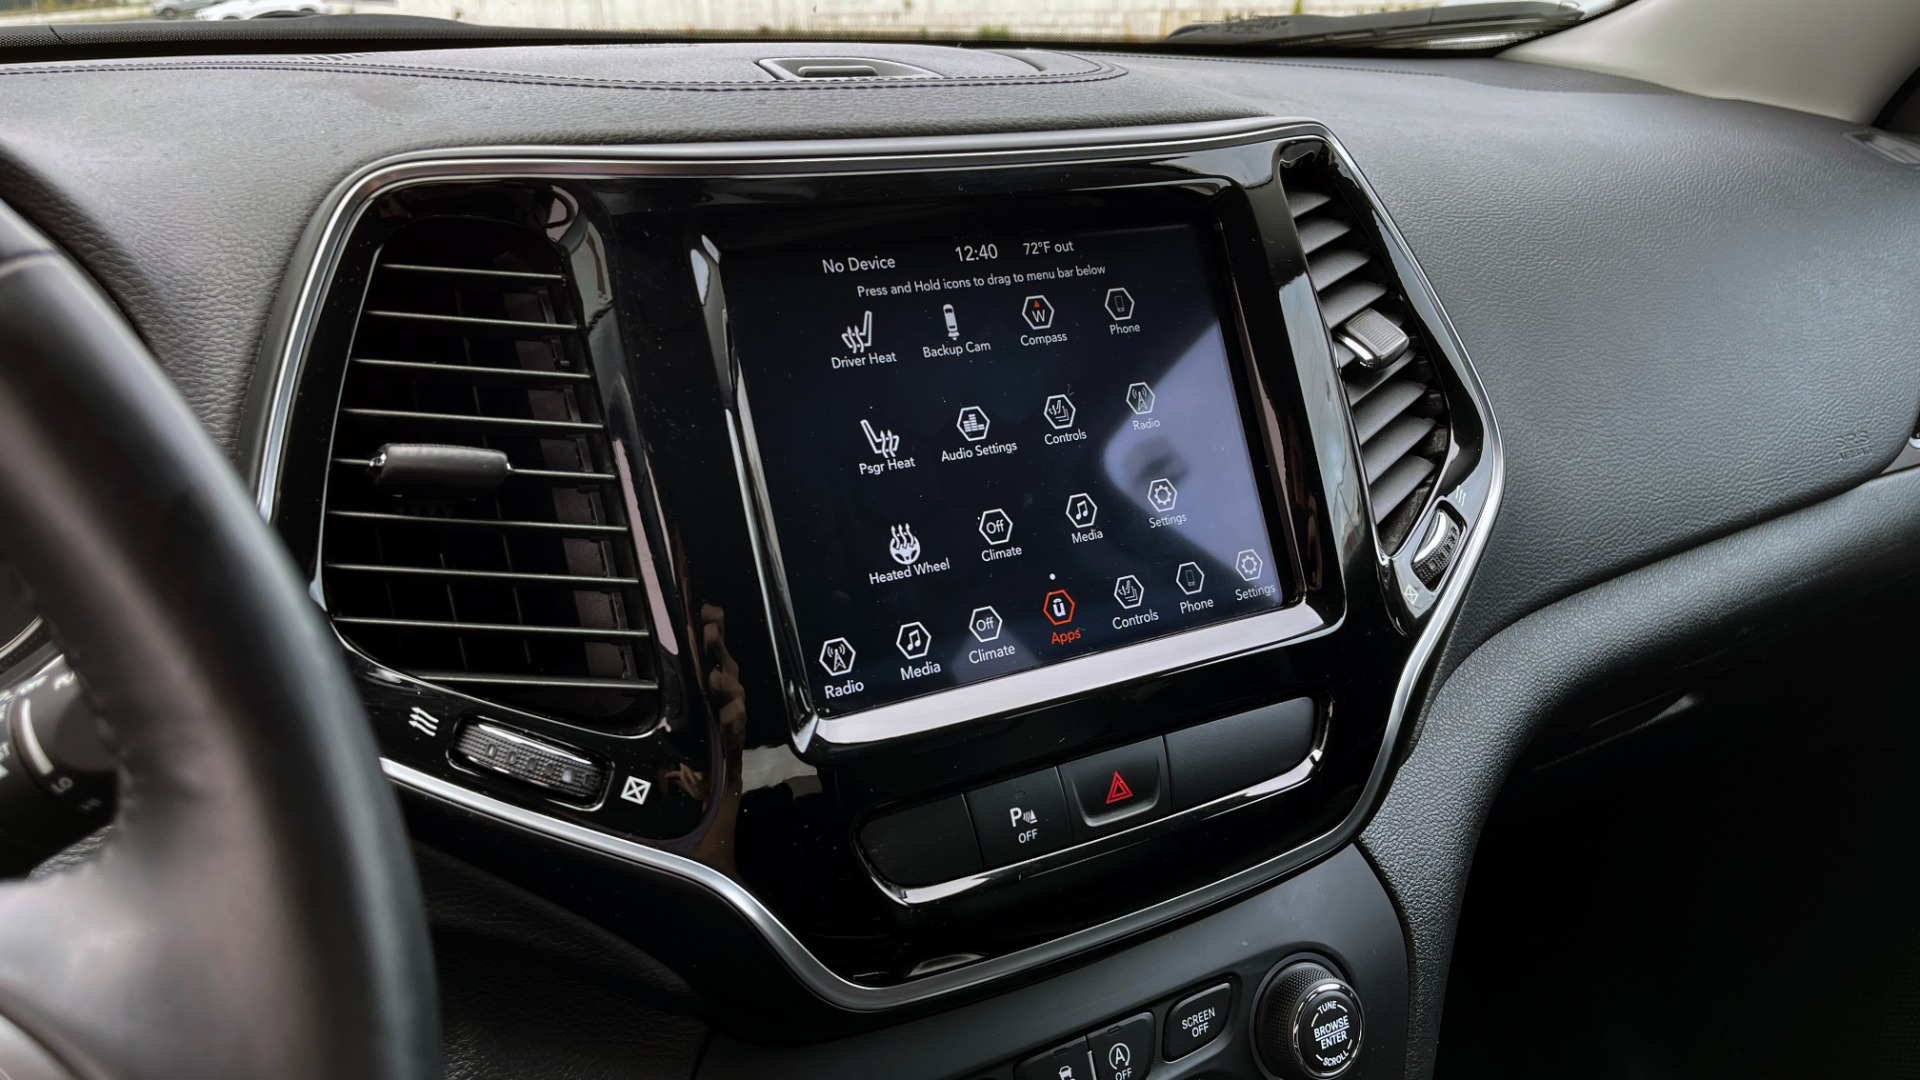 Used 2019 Jeep CHEROKEE LIMITED 2.4L / FWD / APPLE CARPLAY / KEYLESS-GO / REARVIEW for sale $24,395 at Formula Imports in Charlotte NC 28227 36